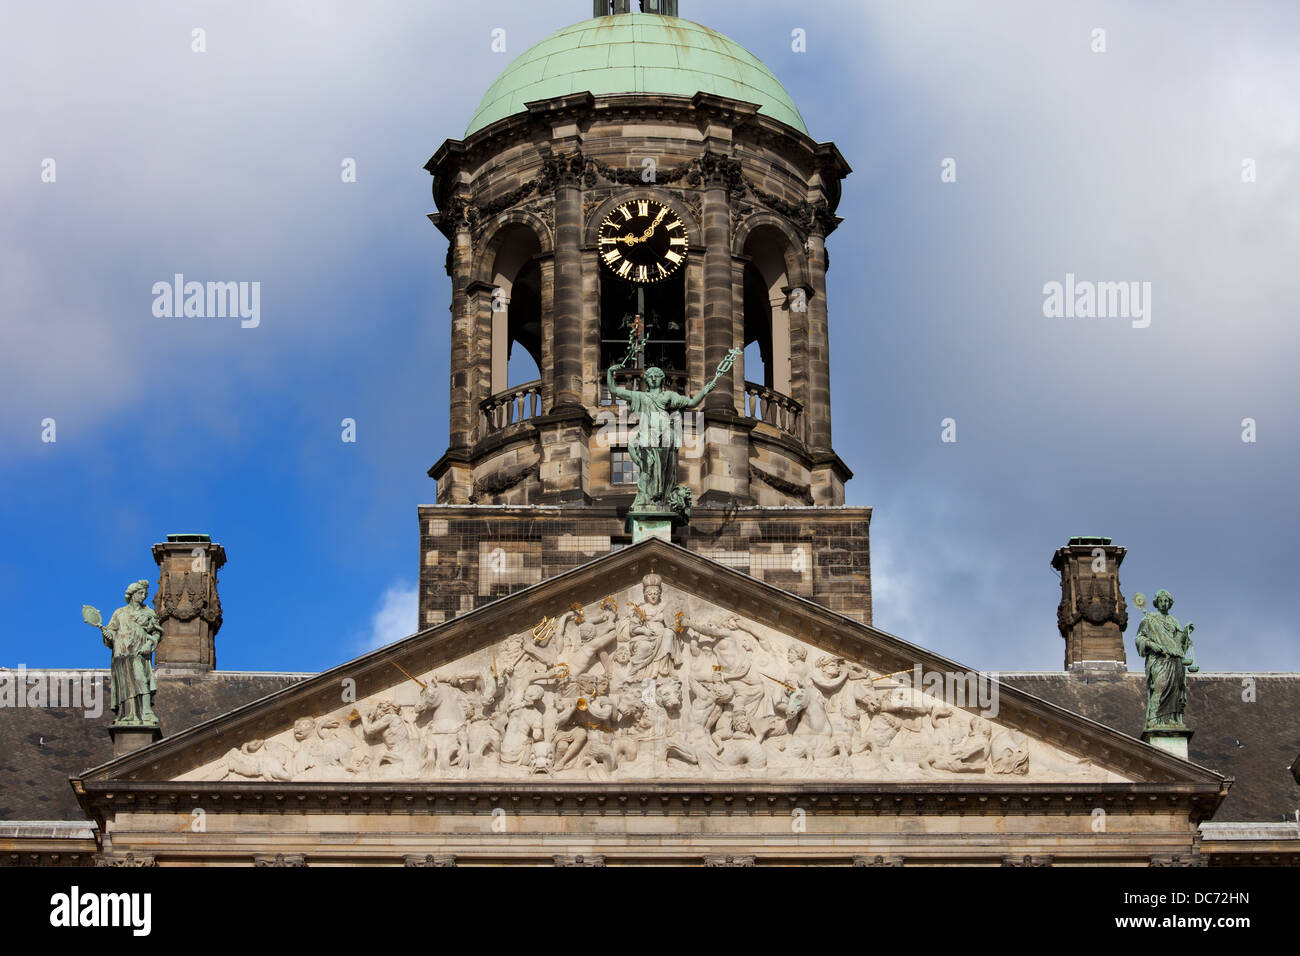 Pediment and Tower of the Royal Palace (Dutch: Koninklijk Paleis) in Amsterdam, Netherlands, 17th century classical - Stock Image